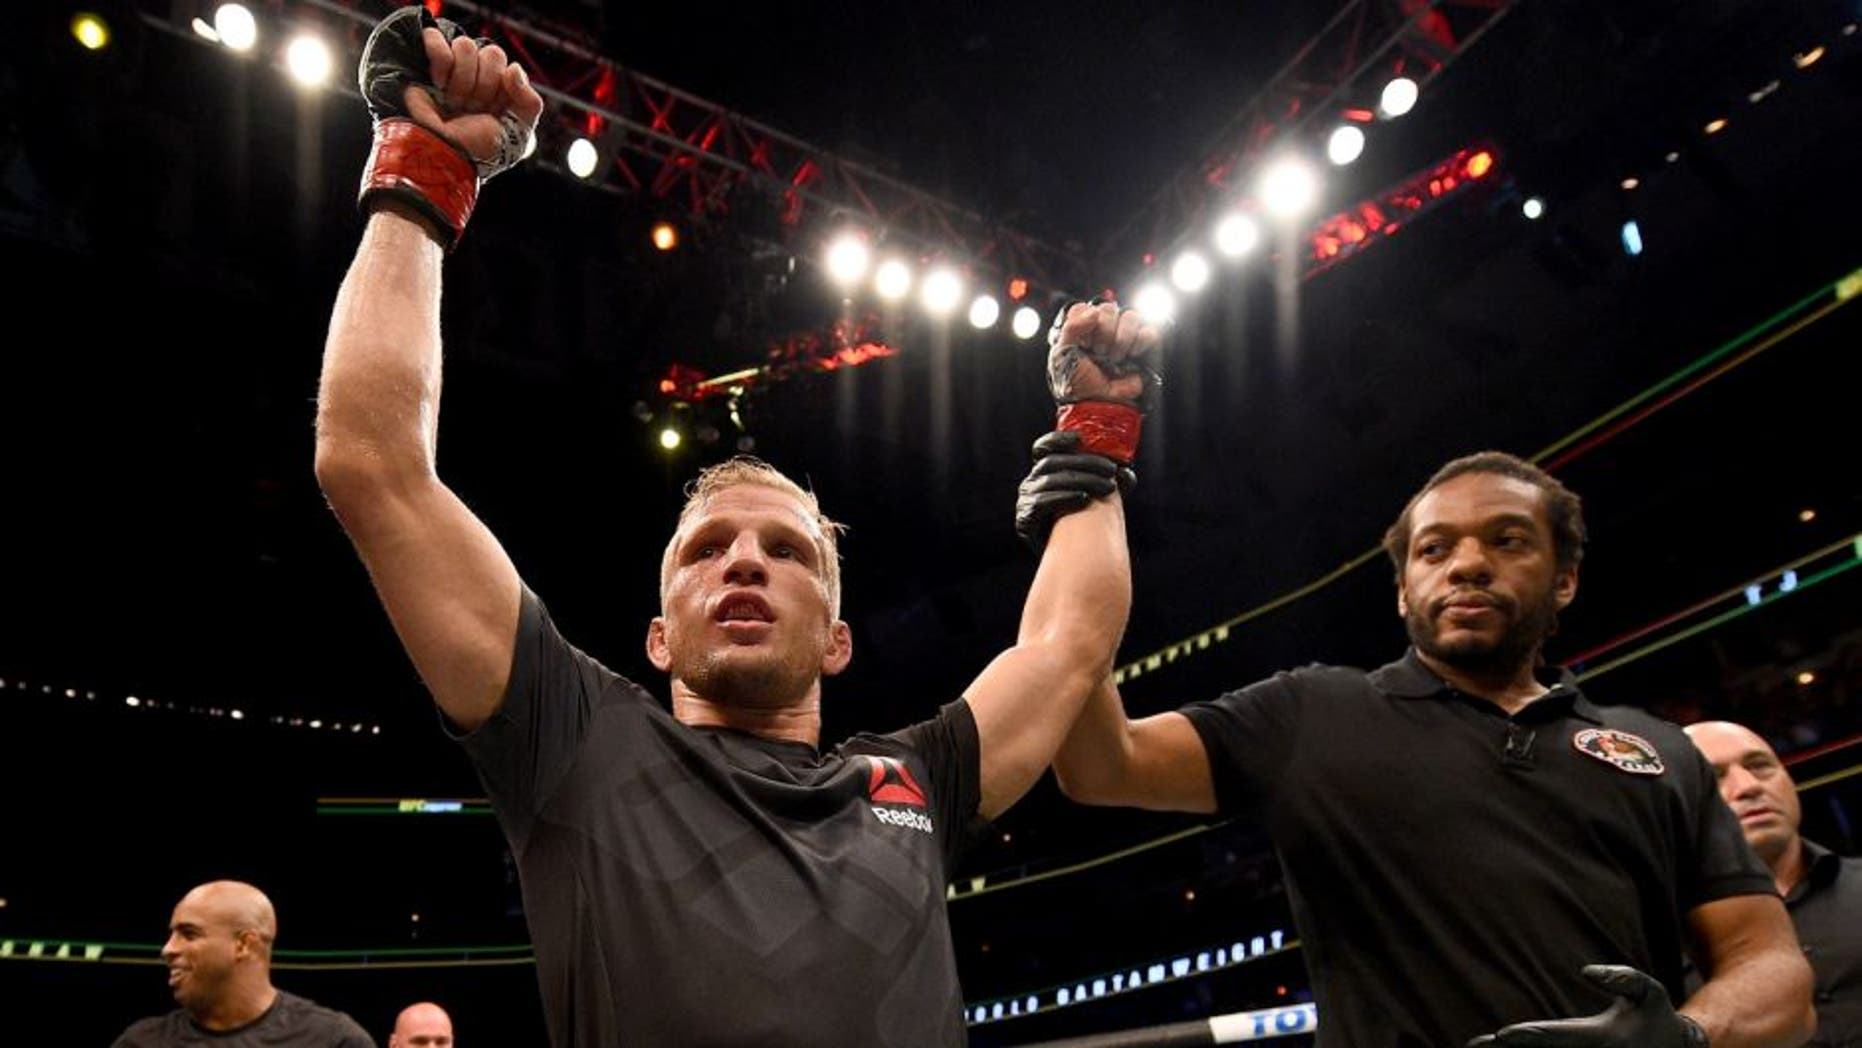 CHICAGO, IL - JULY 25: TJ Dillashaw celebrates after his TKO victory over Renan Barao of Brazil in their UFC bantamweight championship bout during the UFC event at the United Center on July 25, 2015 in Chicago, Illinois. (Photo by Jeff Bottari/Zuffa LLC/Zuffa LLC via Getty Images)